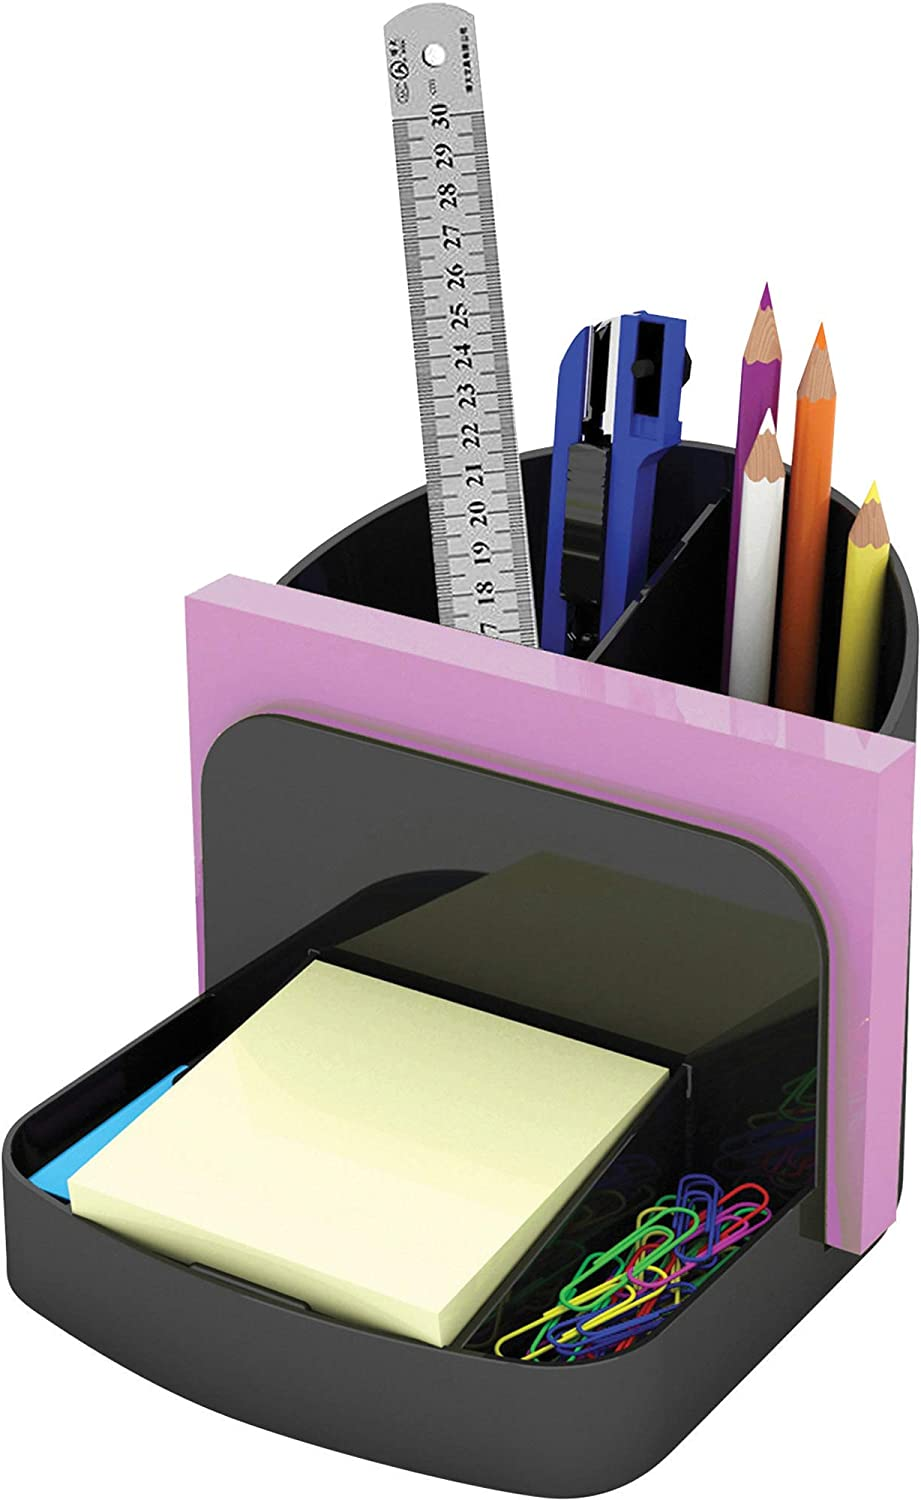 Deflecto Sustainable Office Desk Caddy, 5-3/8 x 5 x 6-3/4 Inches, 30% Recycled Content (38904) (38904)